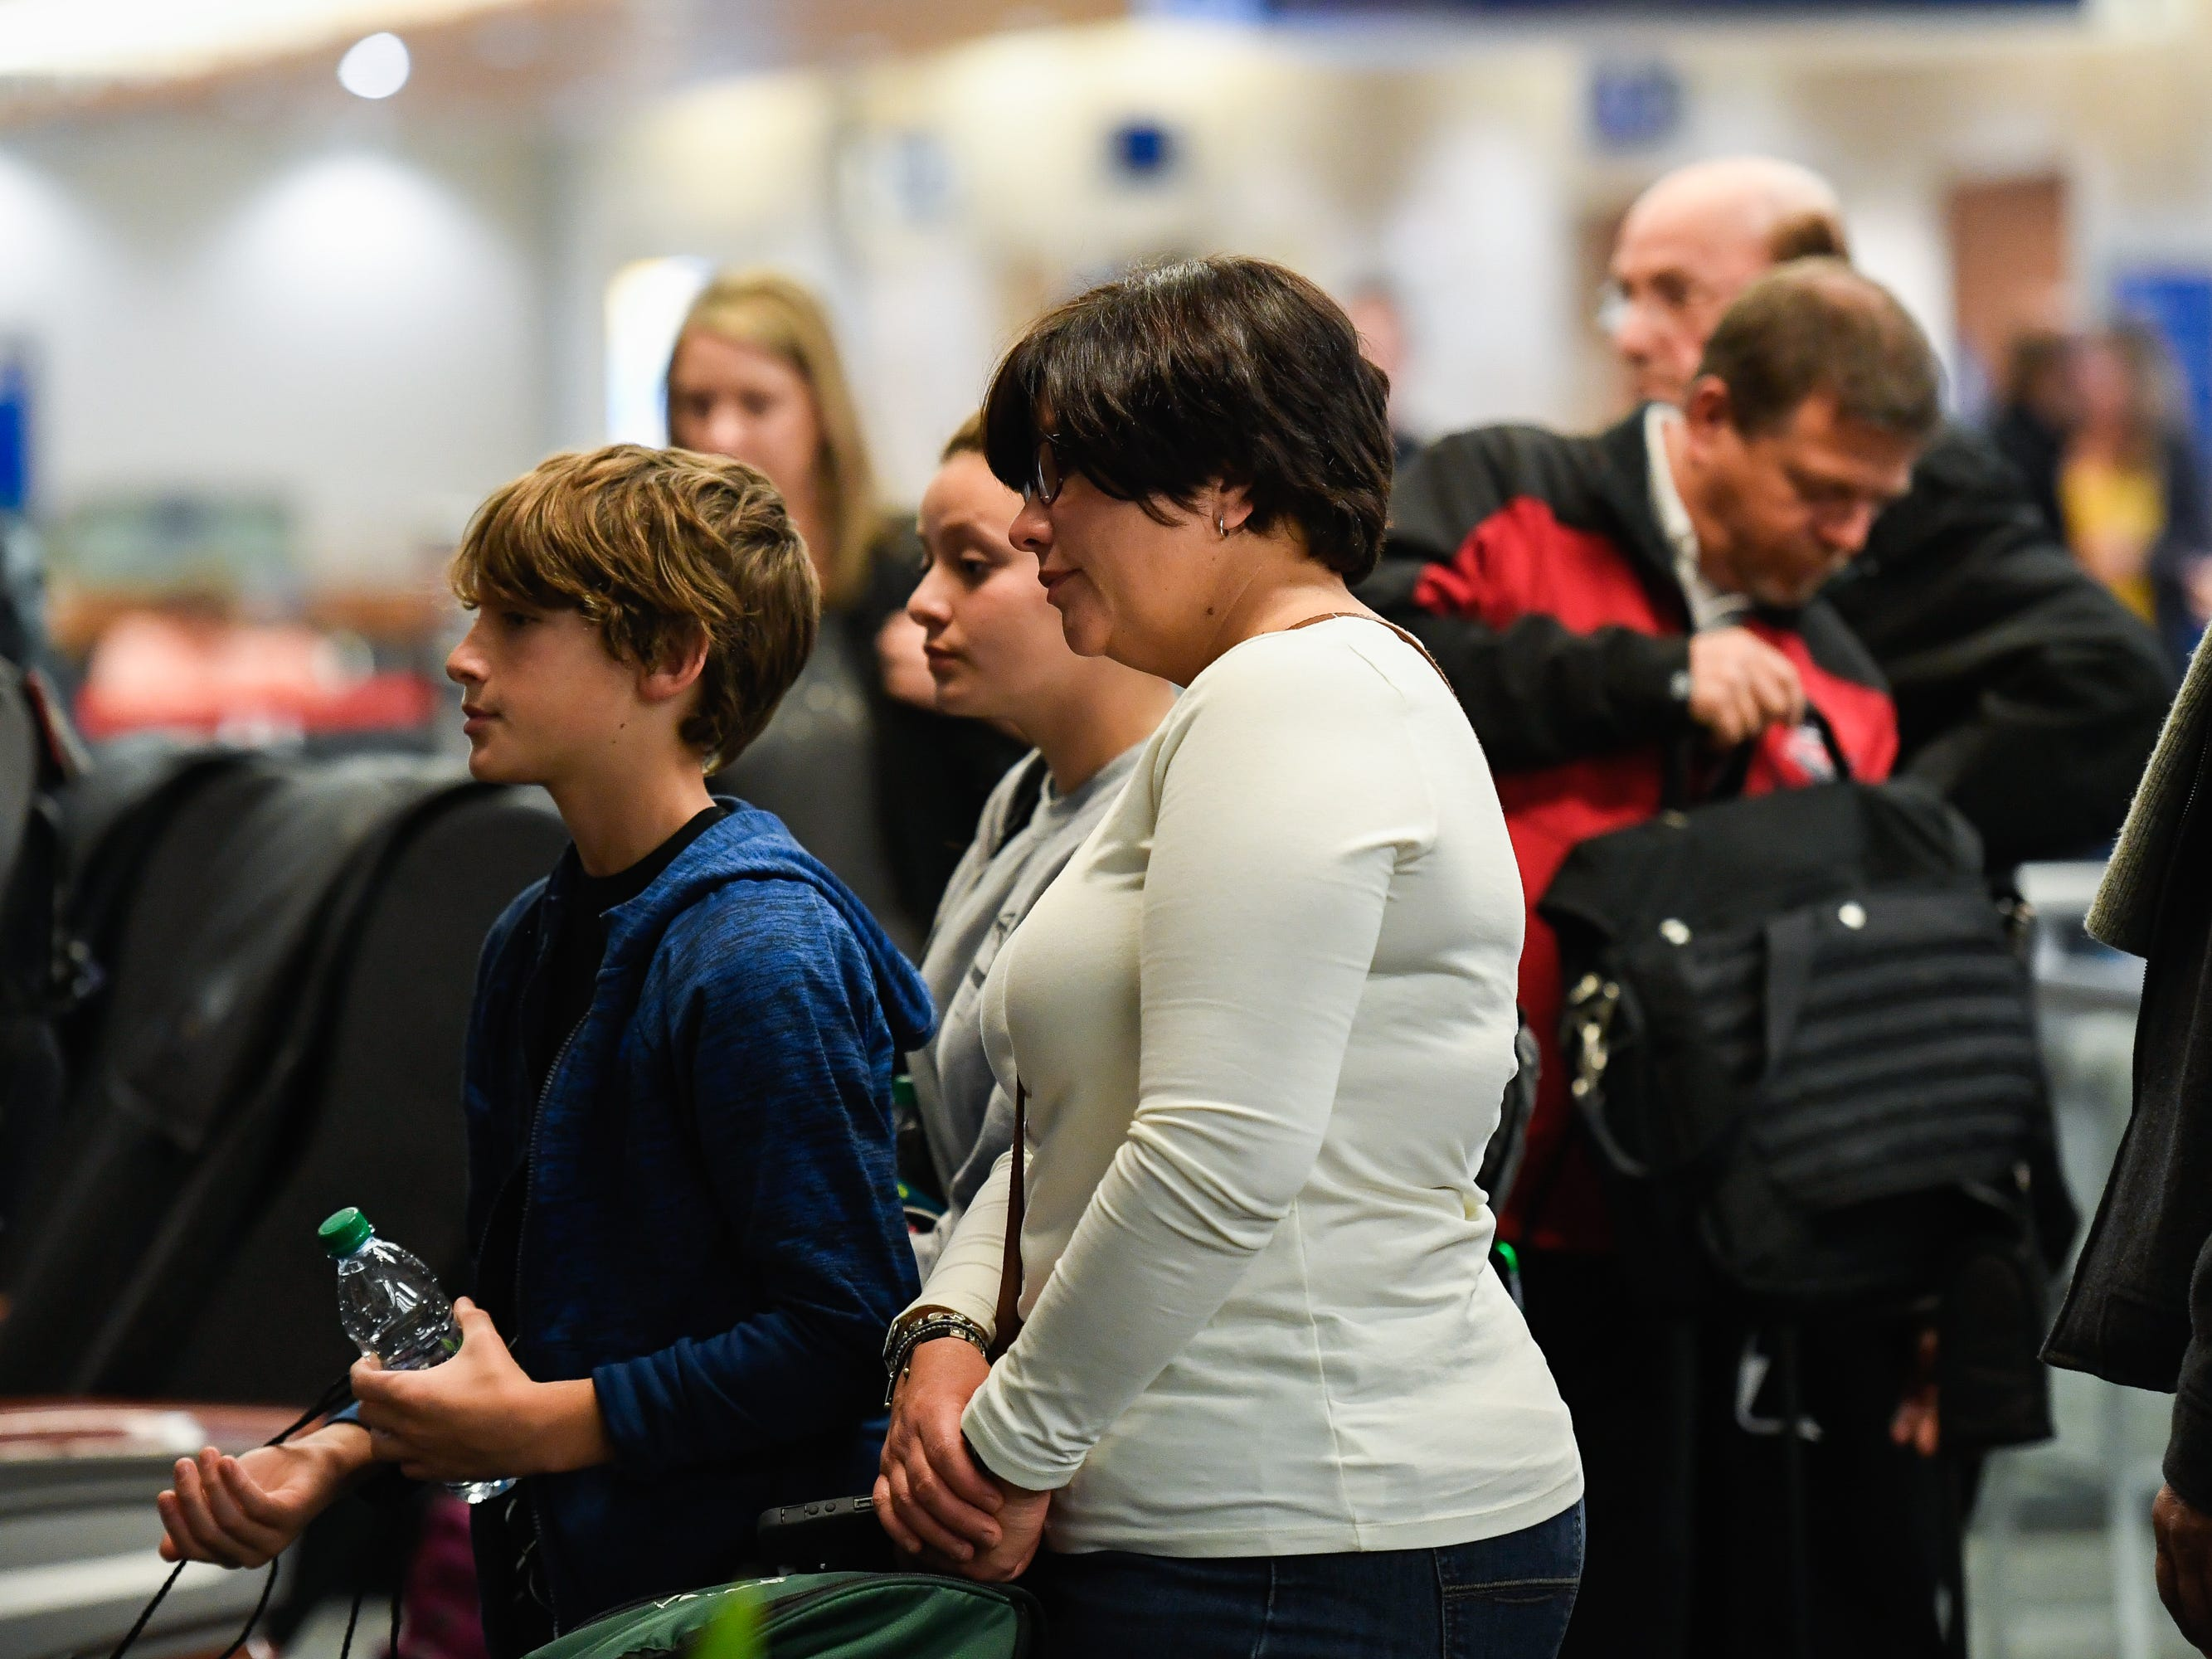 Spectators watch as U.S. Navy Fireman 2nd Class Carl Dorr is escorted off a Delta Airlines flight and brought home on Wednesday, Dec. 5, 2018.